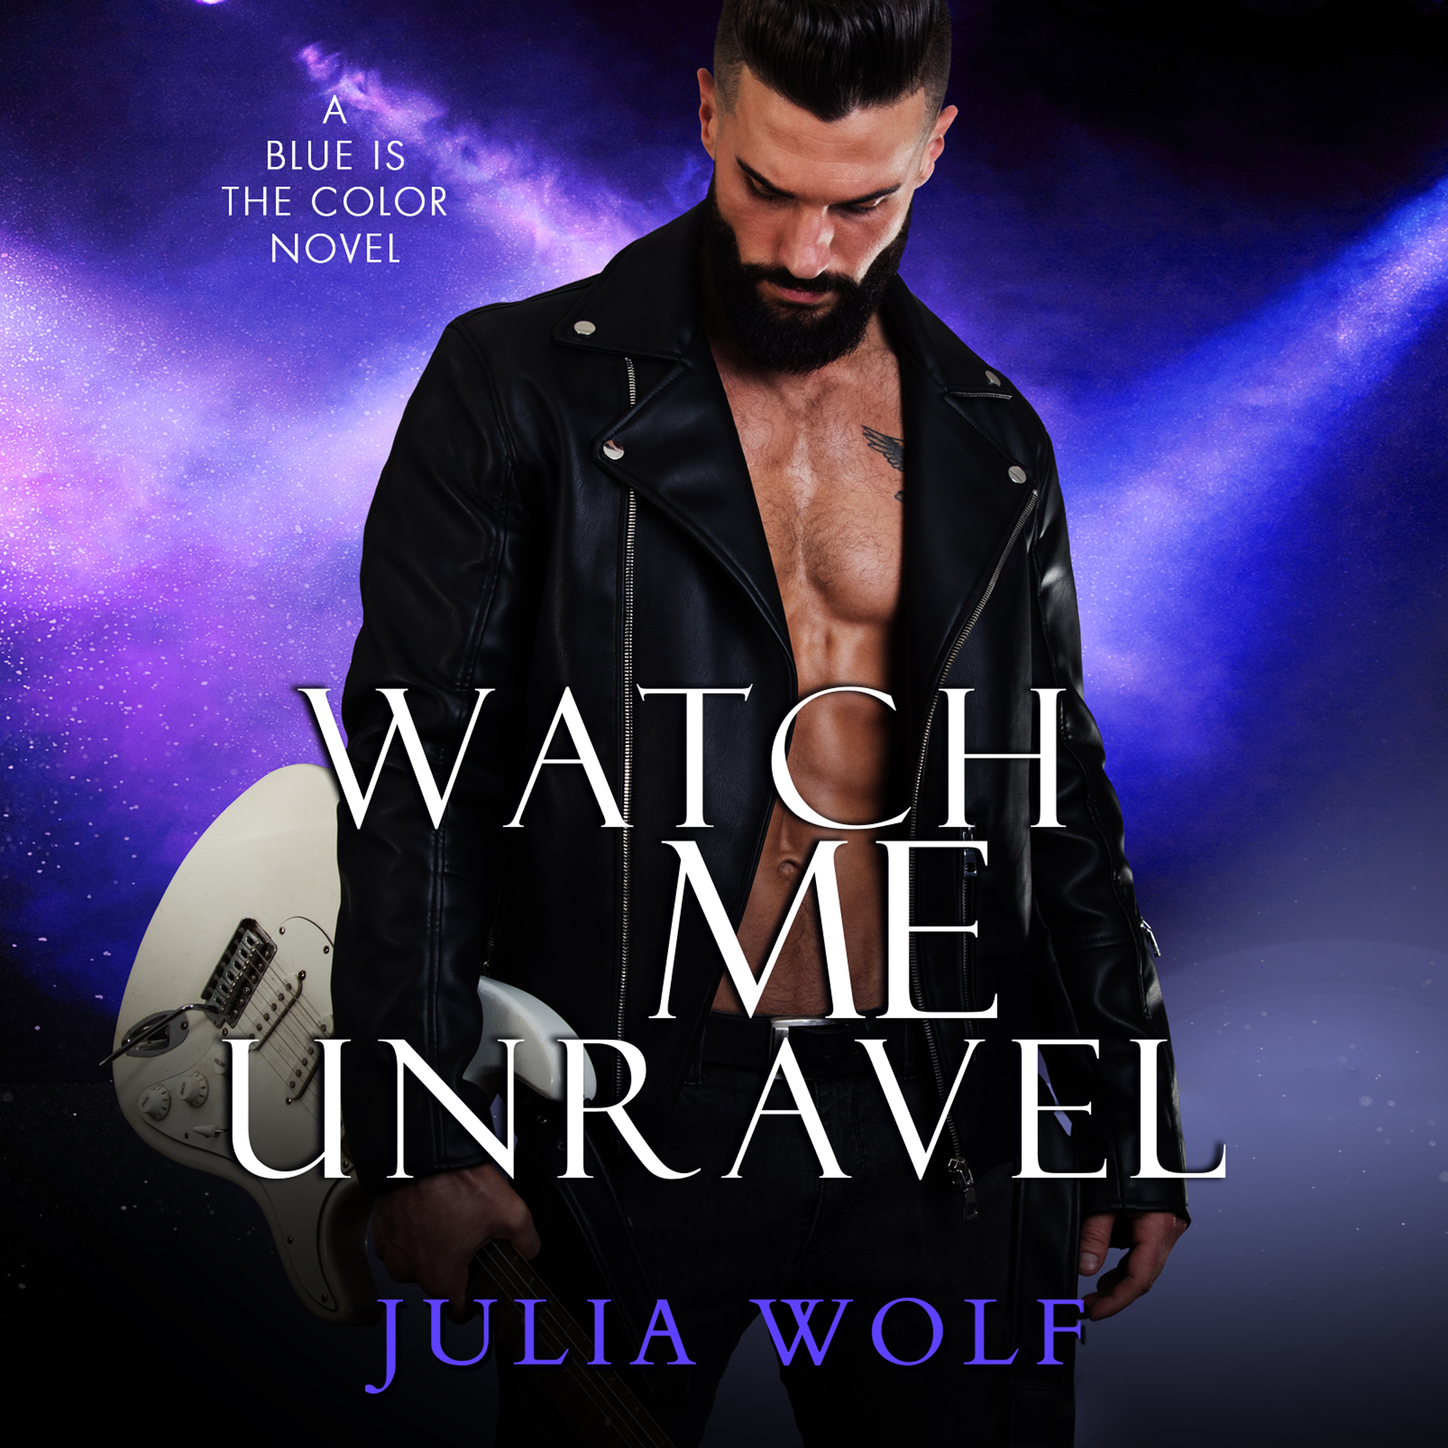 Julia Wolf Watch Me Unravel - A Rock Star Romance - Blue Is the Color, Book 2 (Unabridged) julia wolf times like these a rock star romance blue is the color book 1 unabridged